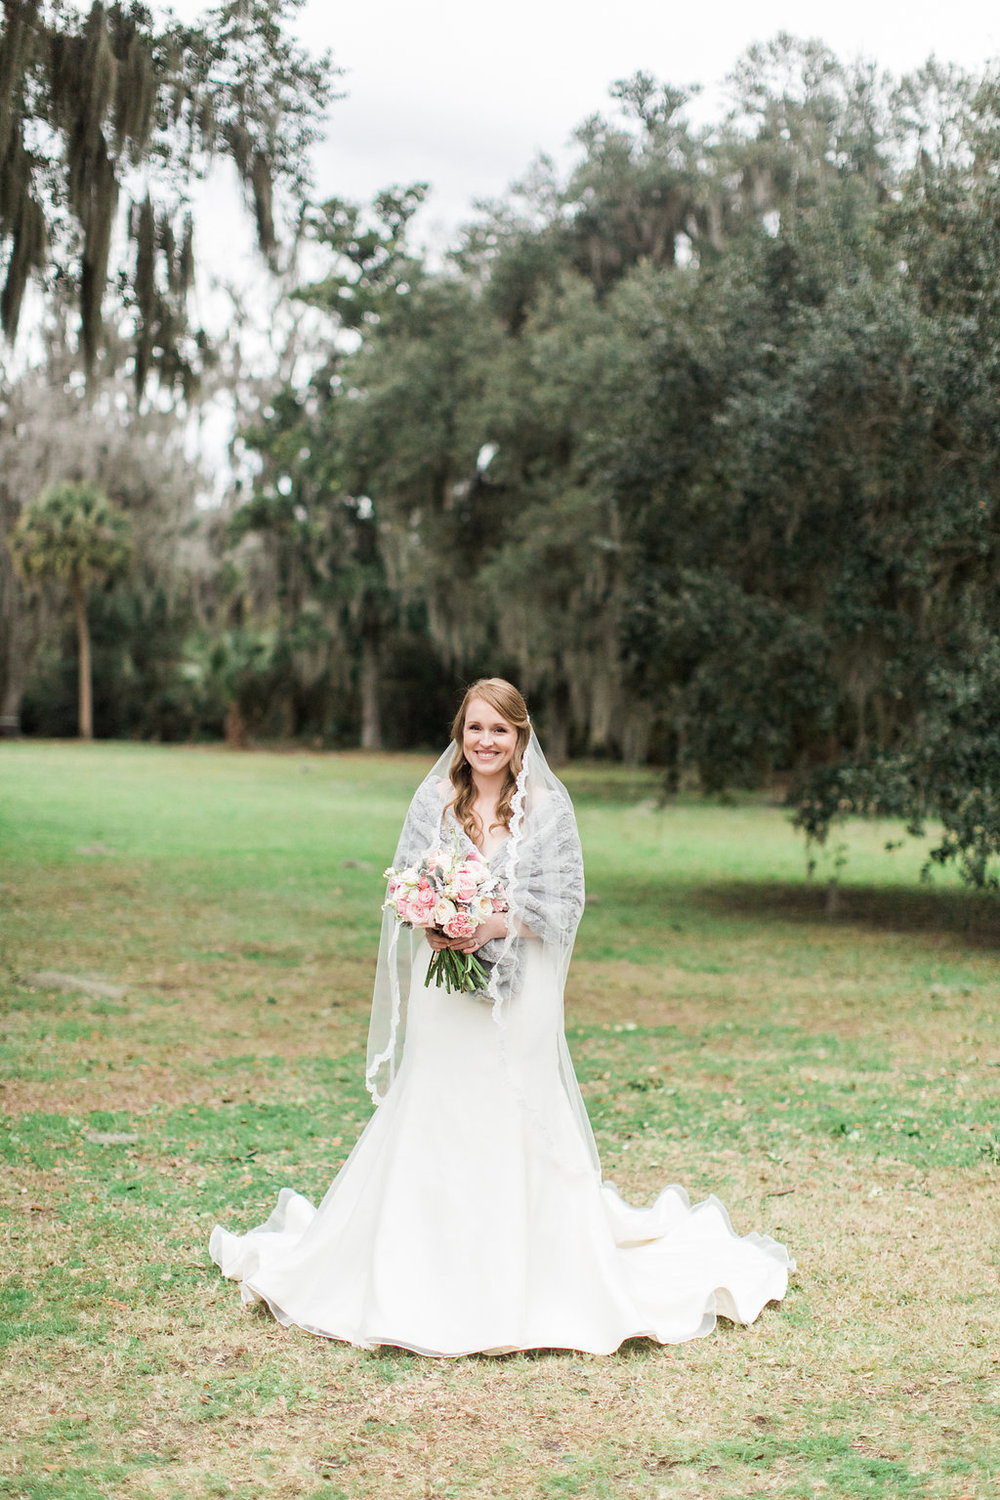 nancy-matt-wedding-whitfield-chapel-wedding-ivory-and-beau-bridal-boutique-the-happy-bloom-savannah-weddings-savannah-wedding-planner-savannah-bridal-boutique-savannah-florist-savannah-bridal-southern-wedding-12.jpg